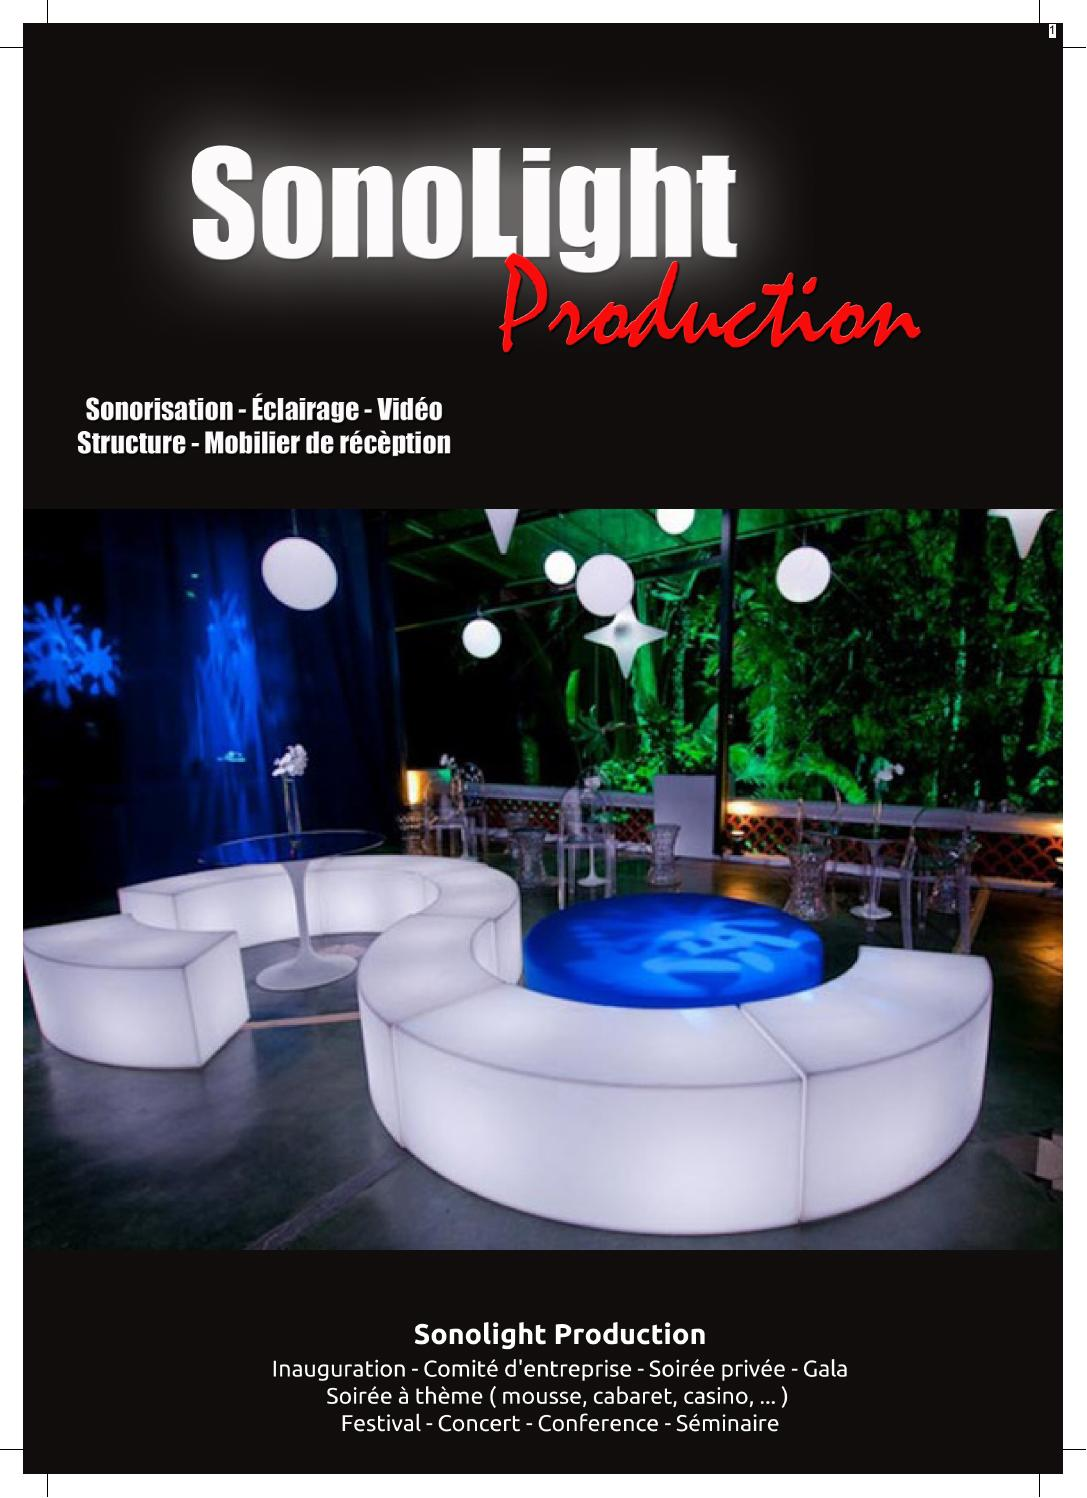 Production Sonolight Sitti Catalogue By Issuu CrxodBeW